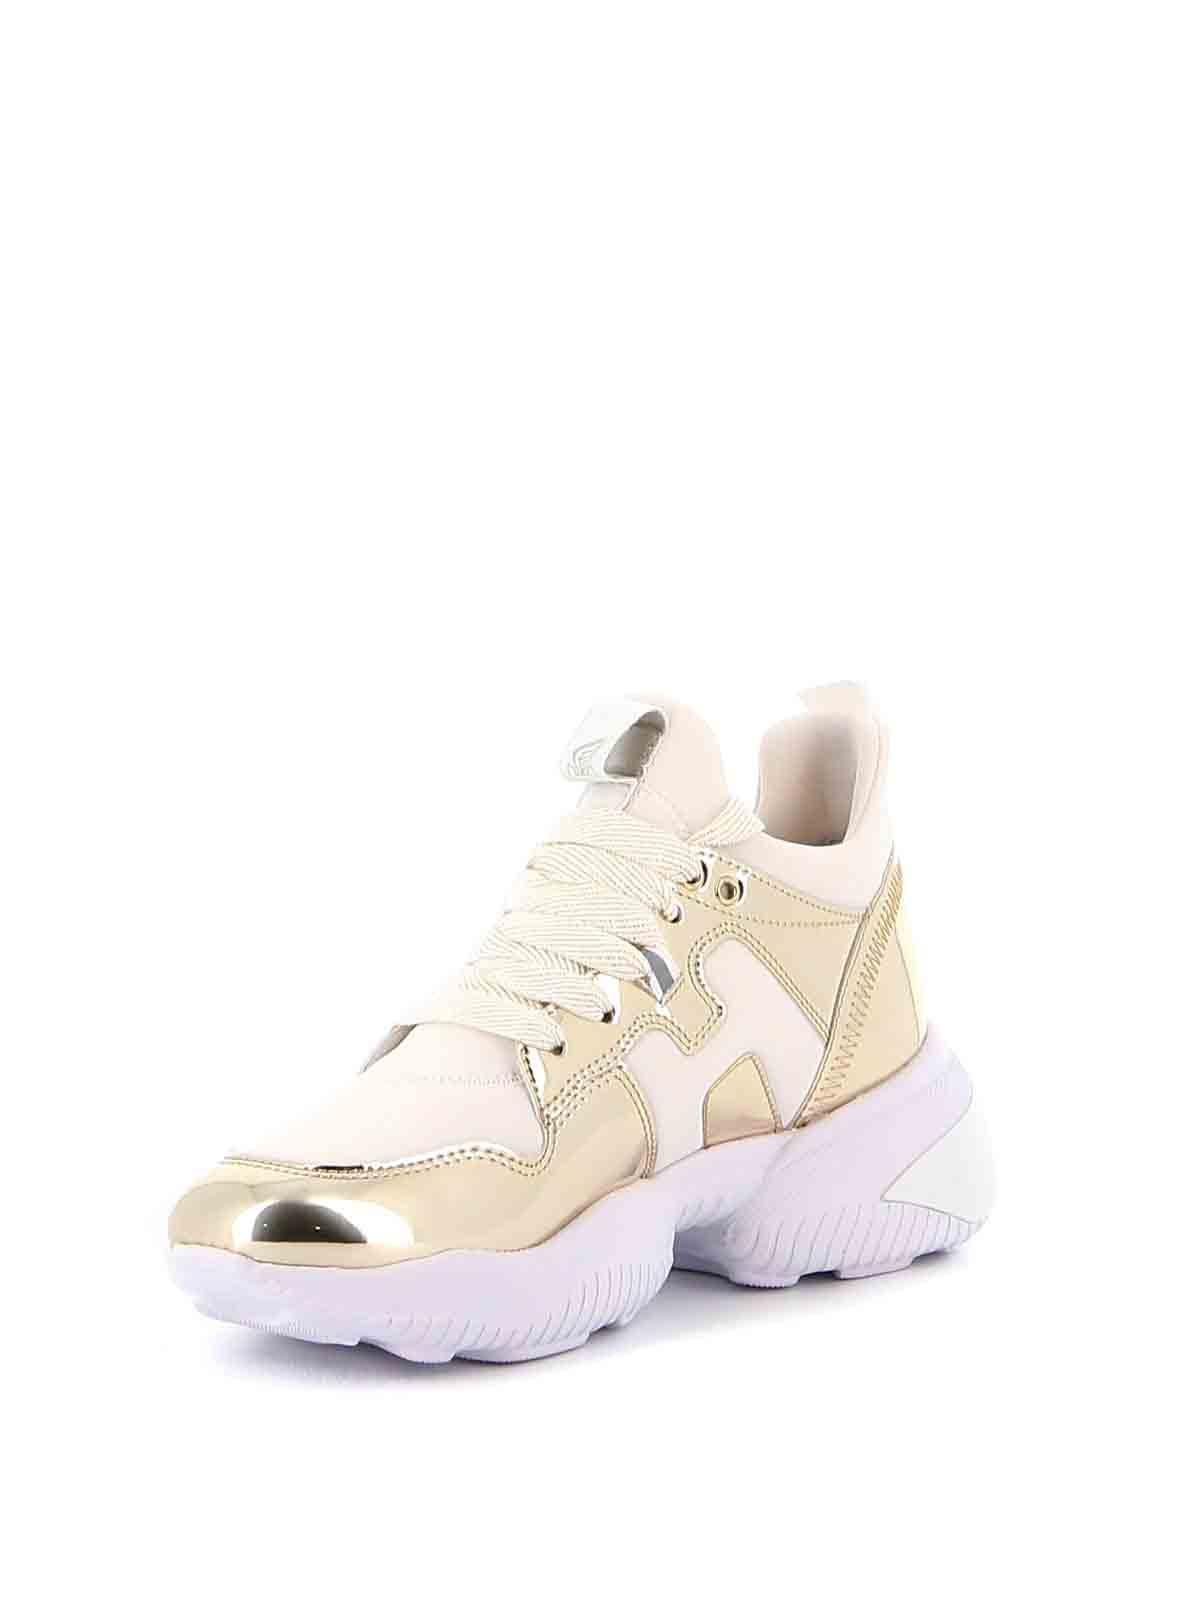 Hogan - Sneakers Interaction dorate - sneakers - HXW5250CH20MSX0746